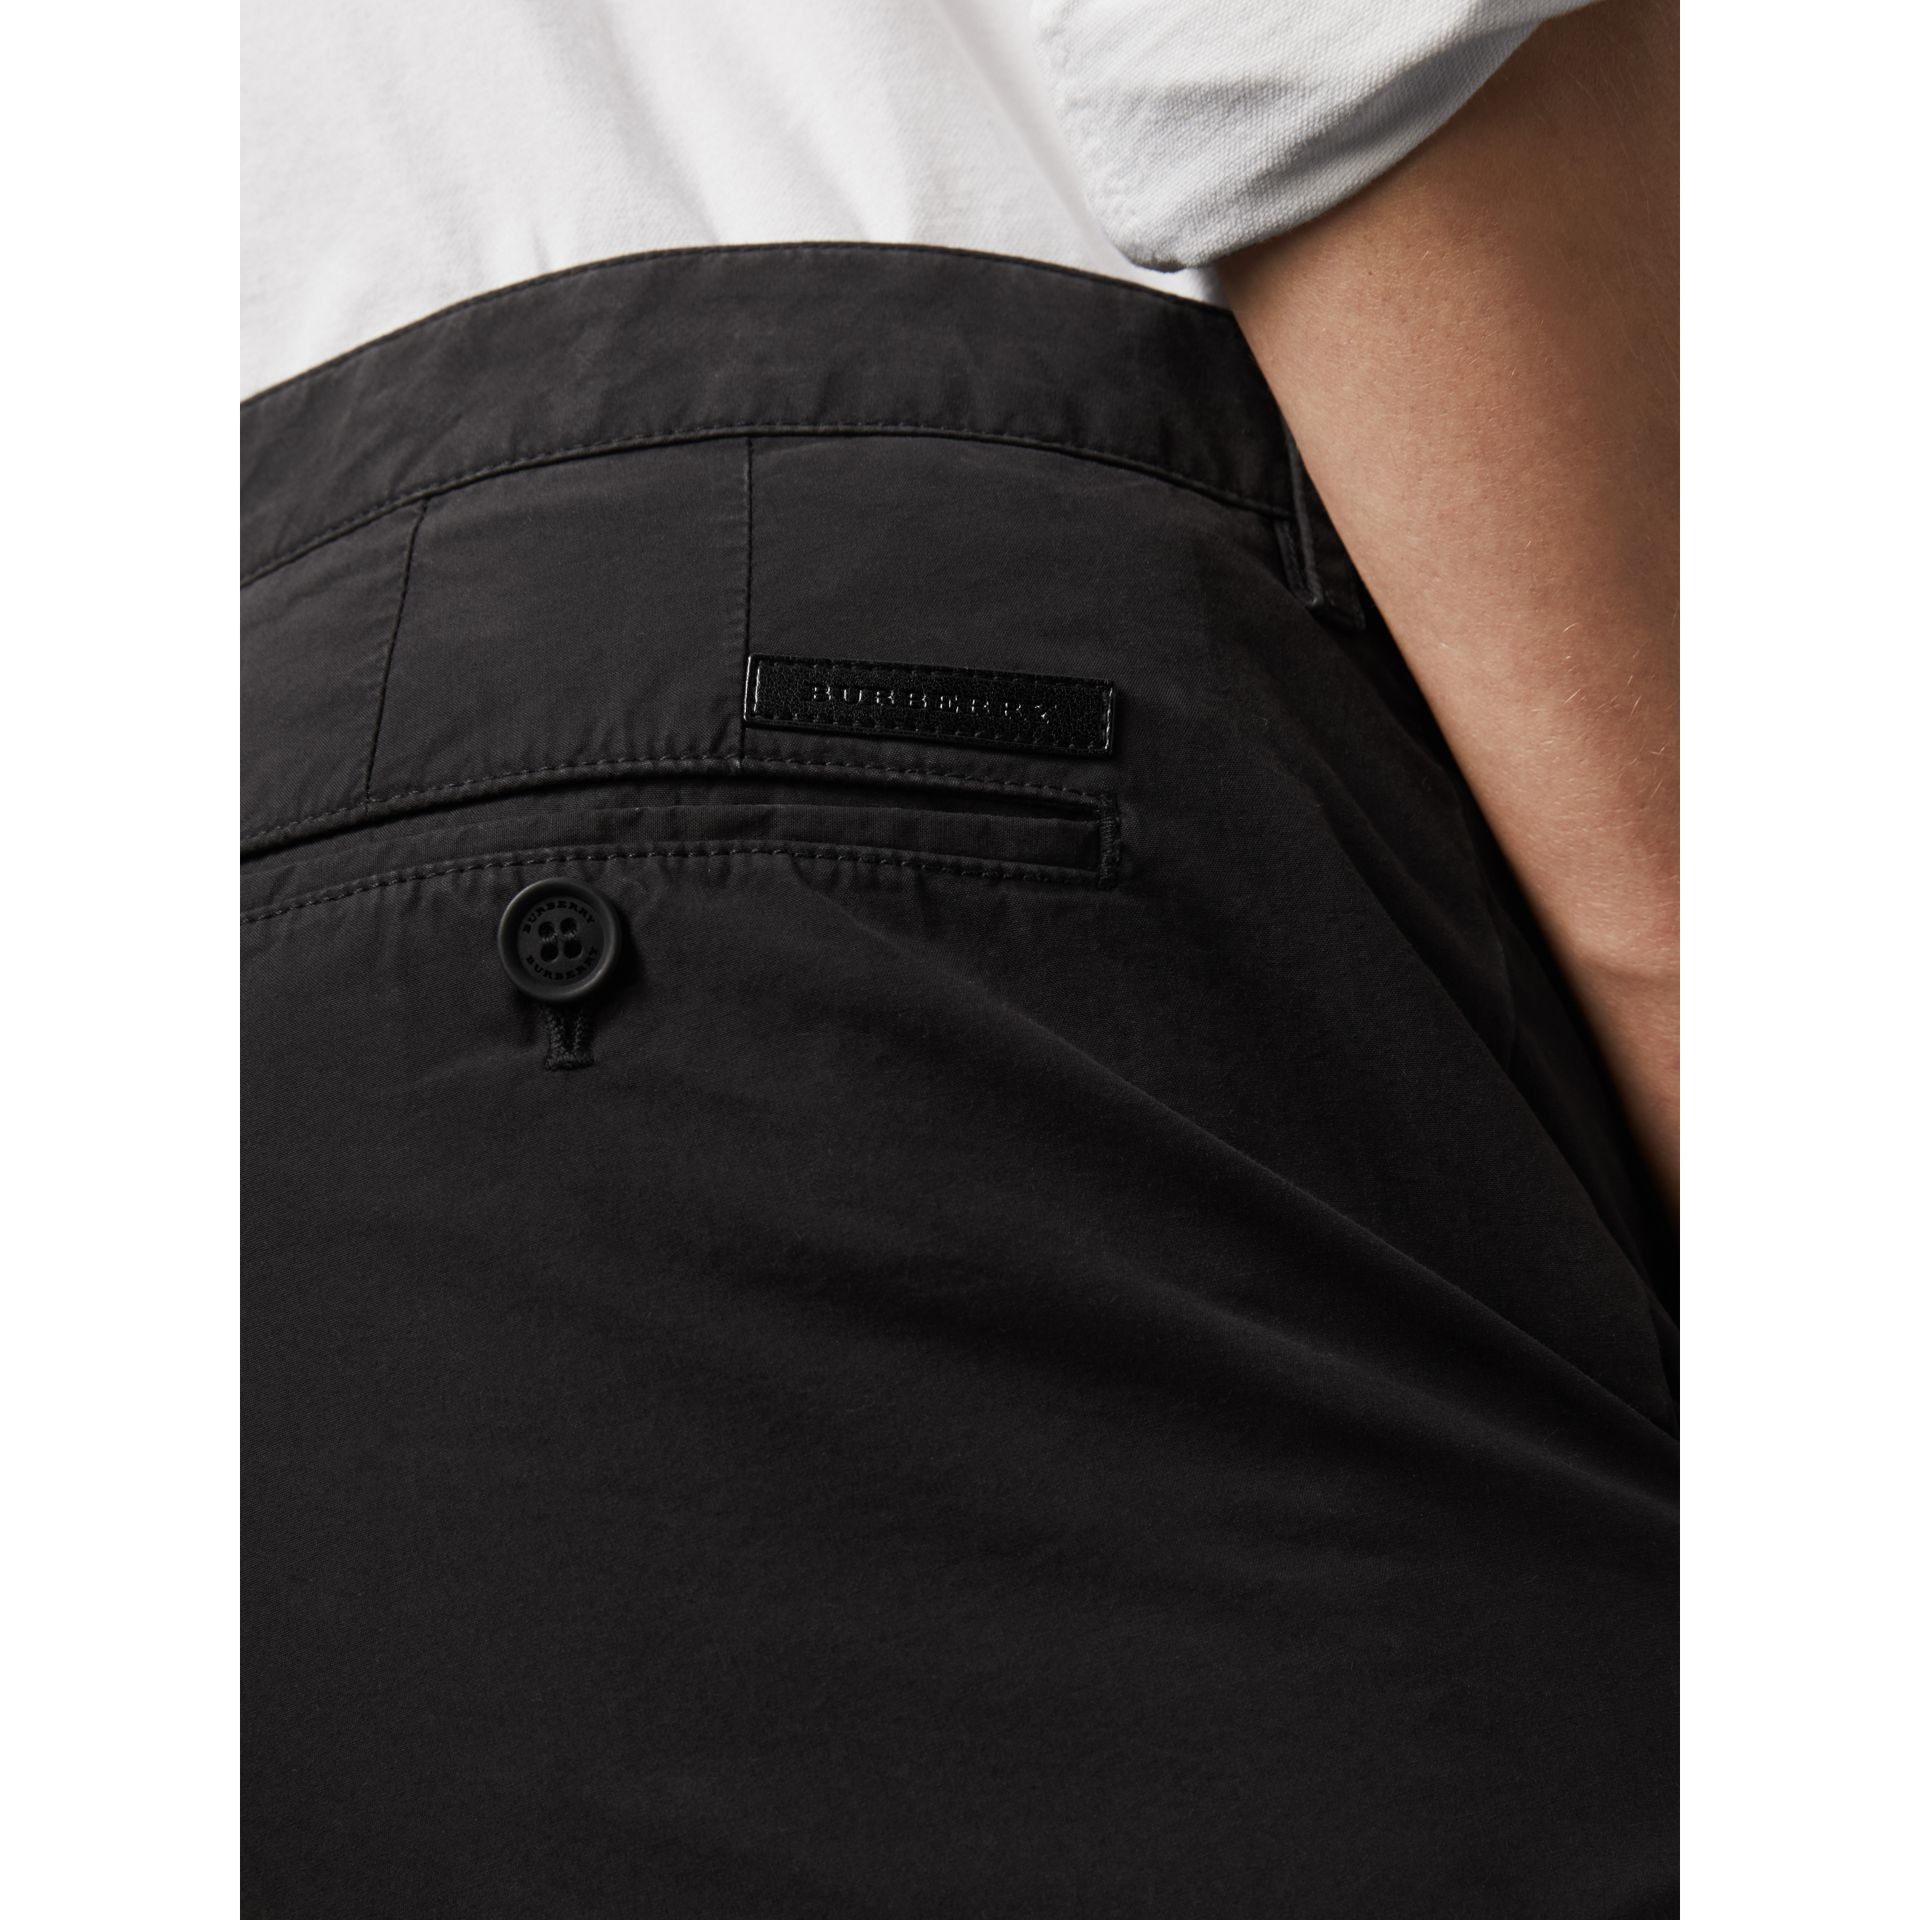 Short chino en popeline de coton (Noir) - Homme | Burberry - photo de la galerie 2